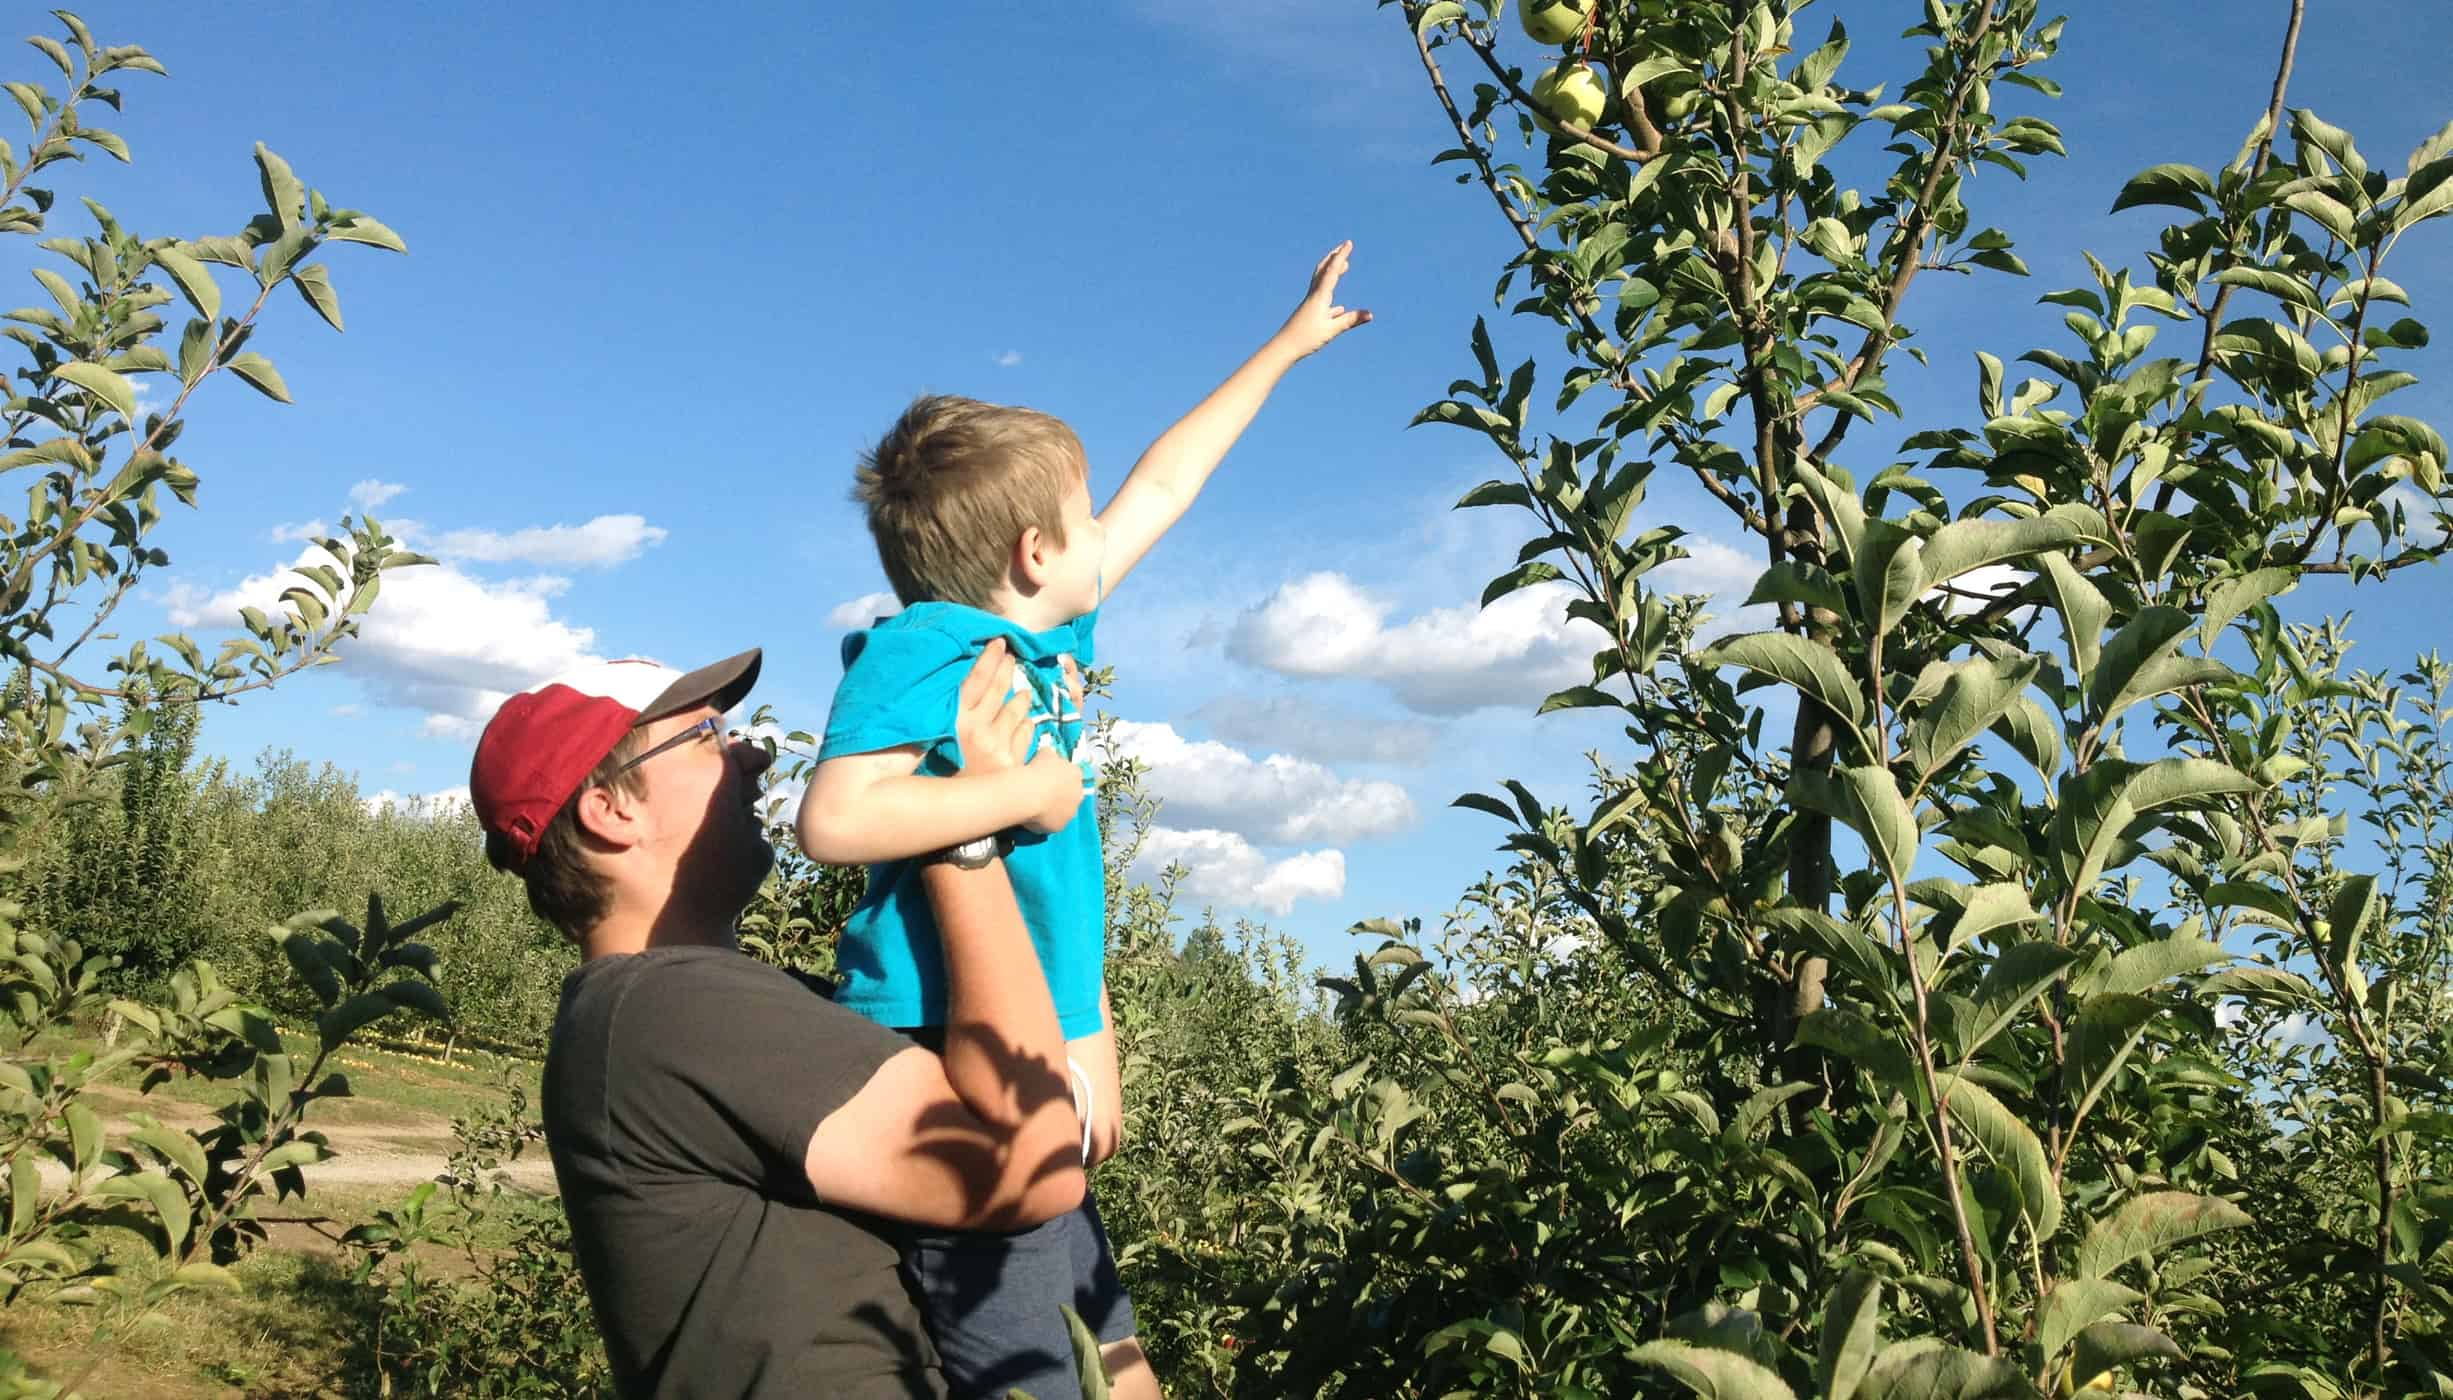 Brother's picking apples at Eckert's Farm: teen holds little brother up to reach fruit on tall branch.